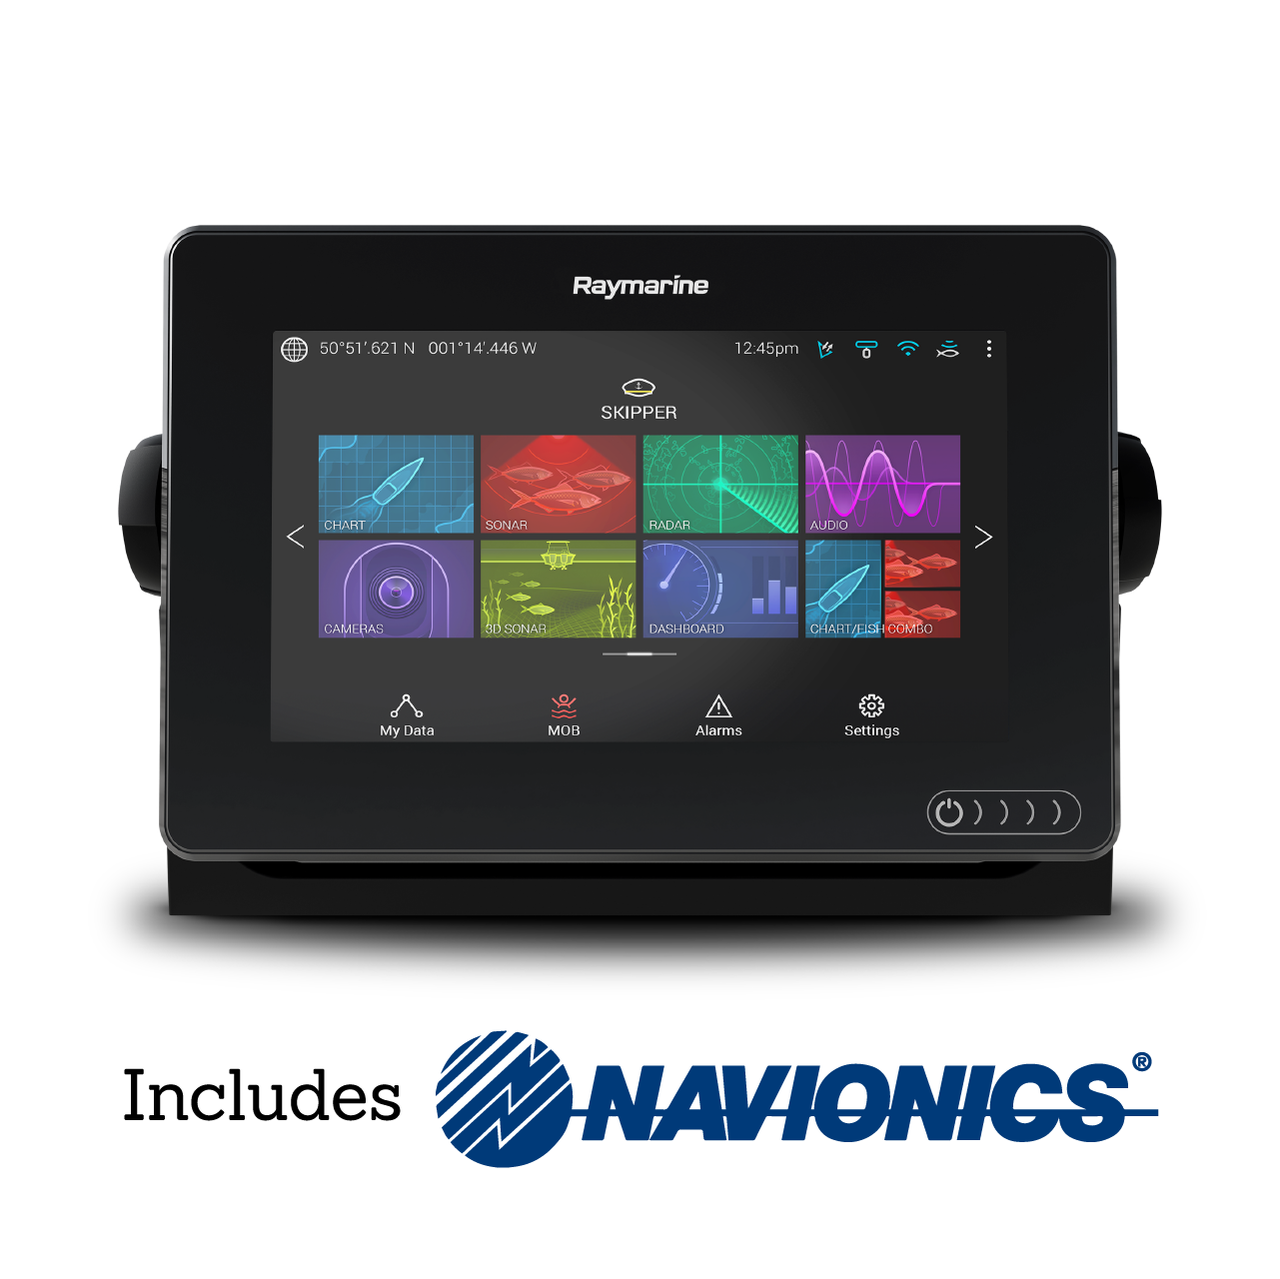 Raymarine Axiom 7 Multifunction Display with Navionics